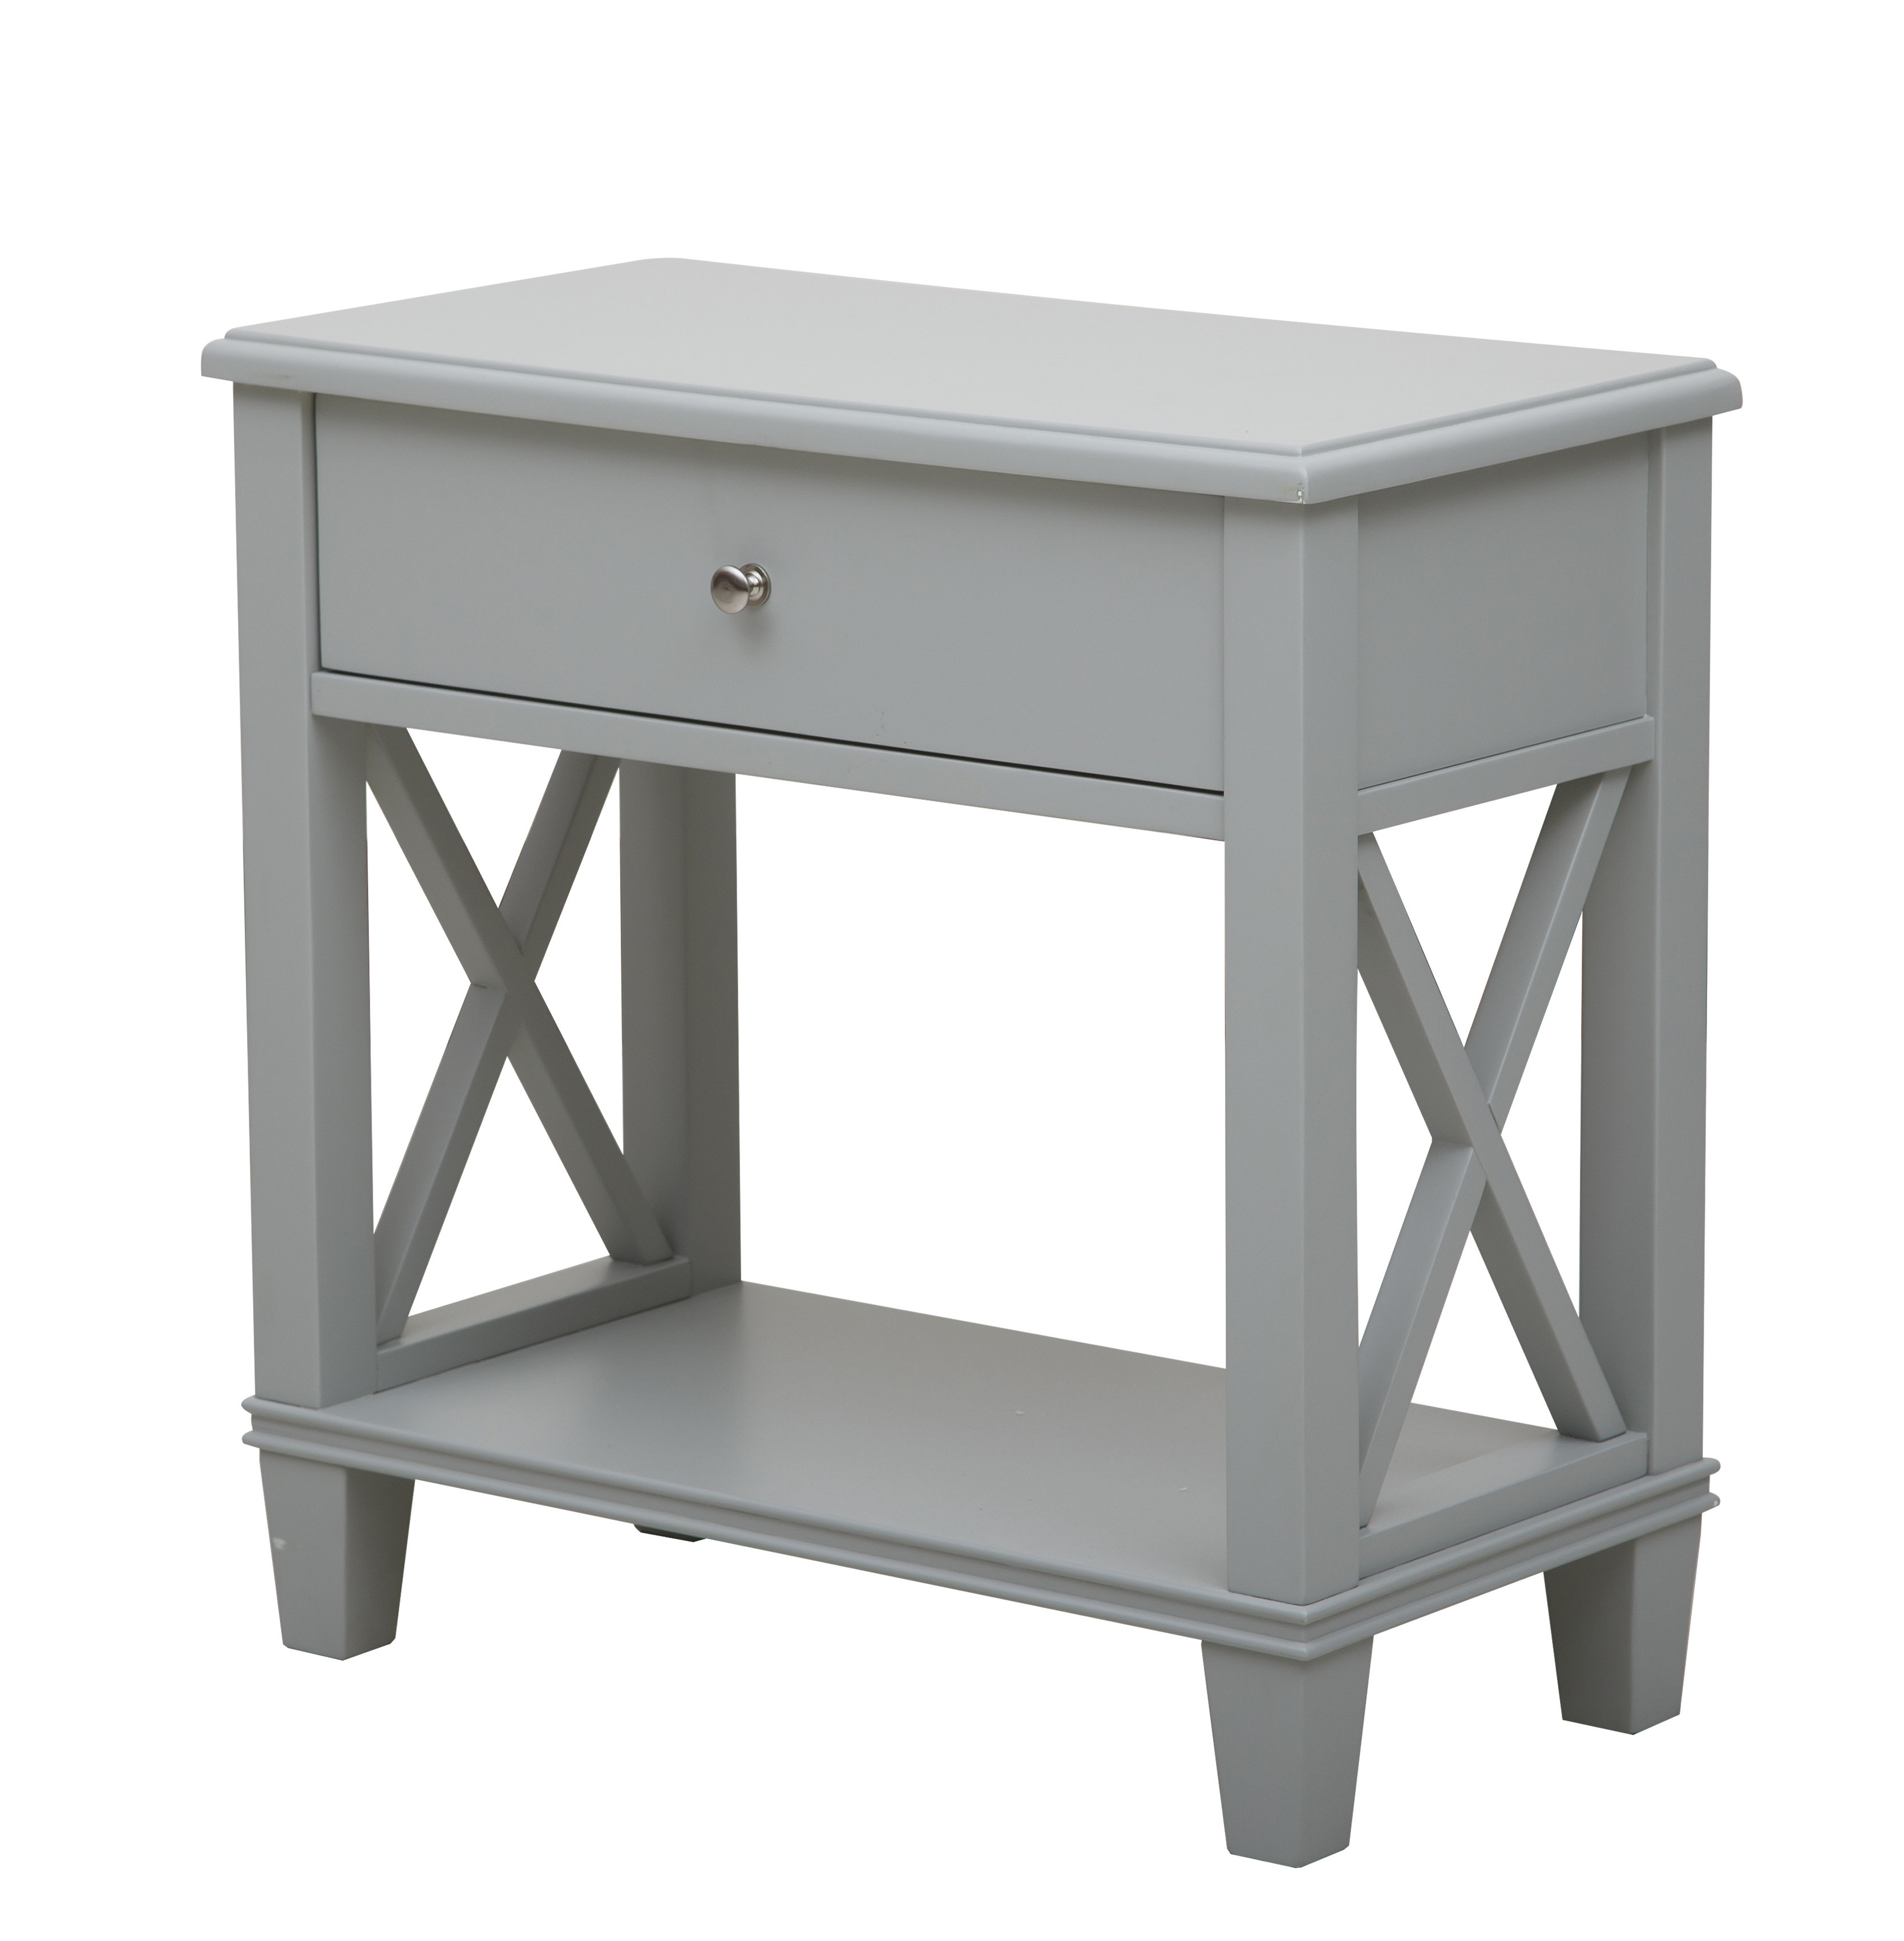 beachcrest home flintridge end table reviews storage accent black room essentials thin coffee inch wall clock ceramic door knobs high outside box tiered metal counter height with